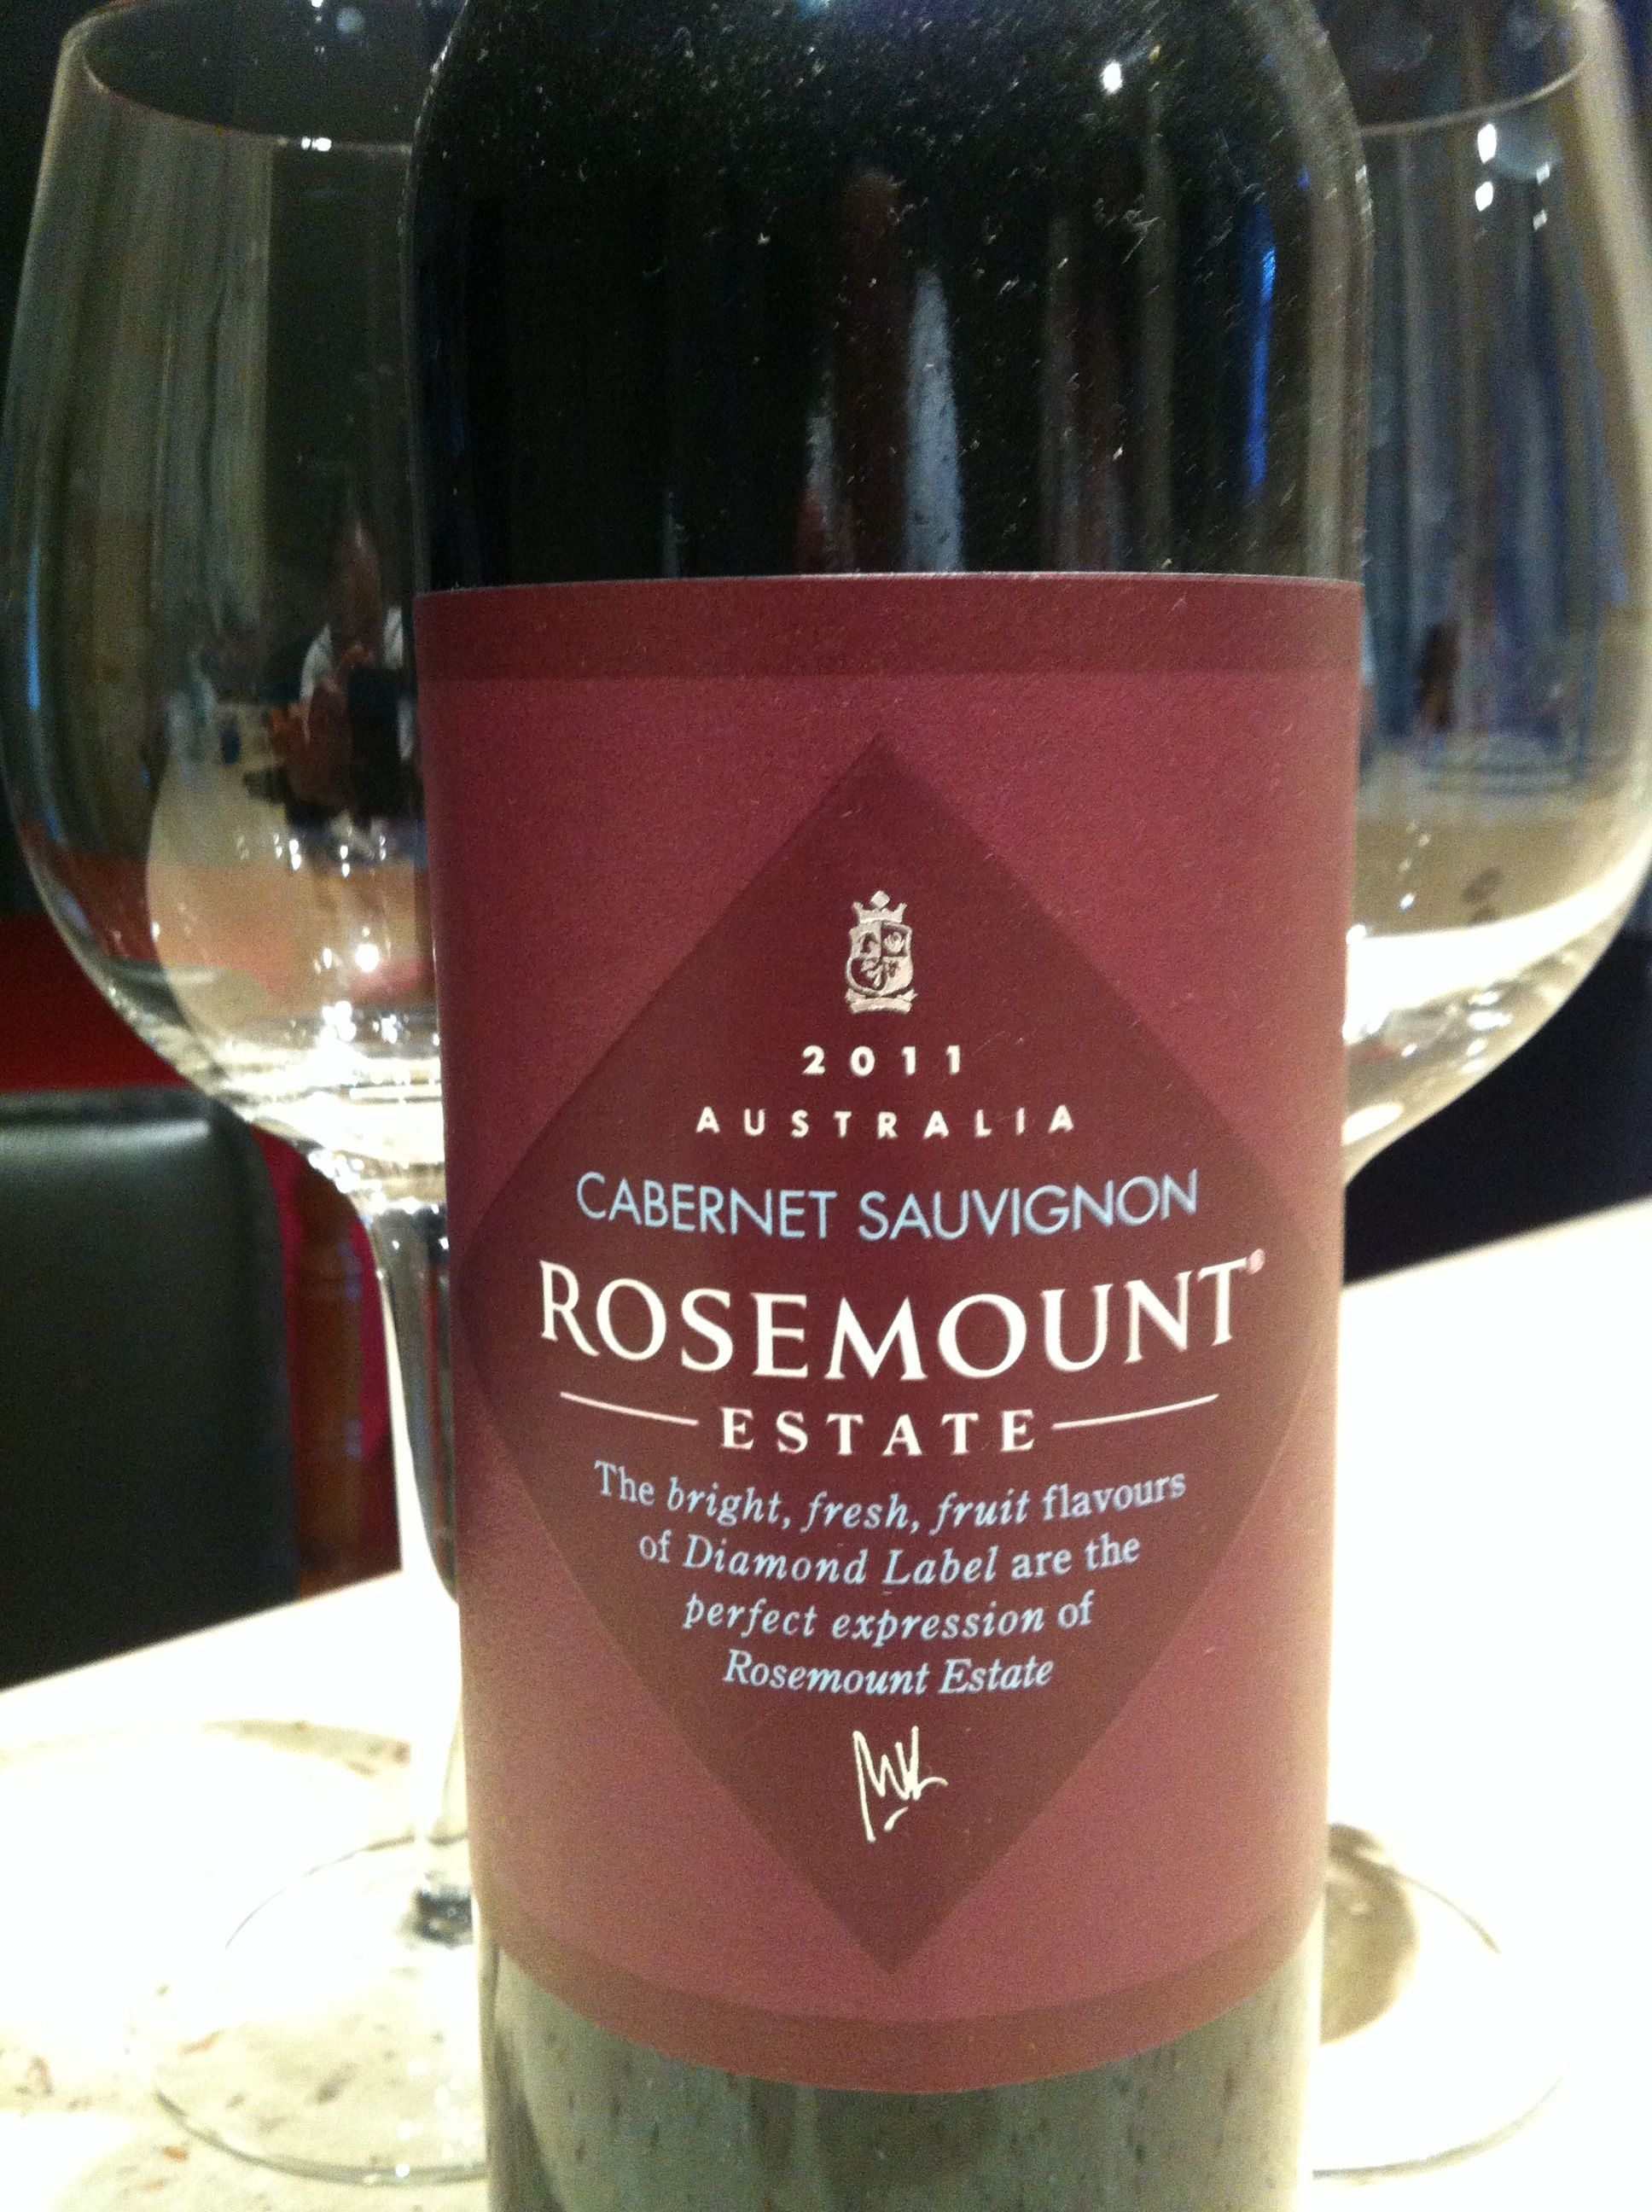 2011 Rosemount Estate Cabernet Sauvignon Still Very Young Generous Wine With Full Fresh Fruit Flavours And Smooth Luxuriou Fruit Flavored Fresh Fruit Flavors